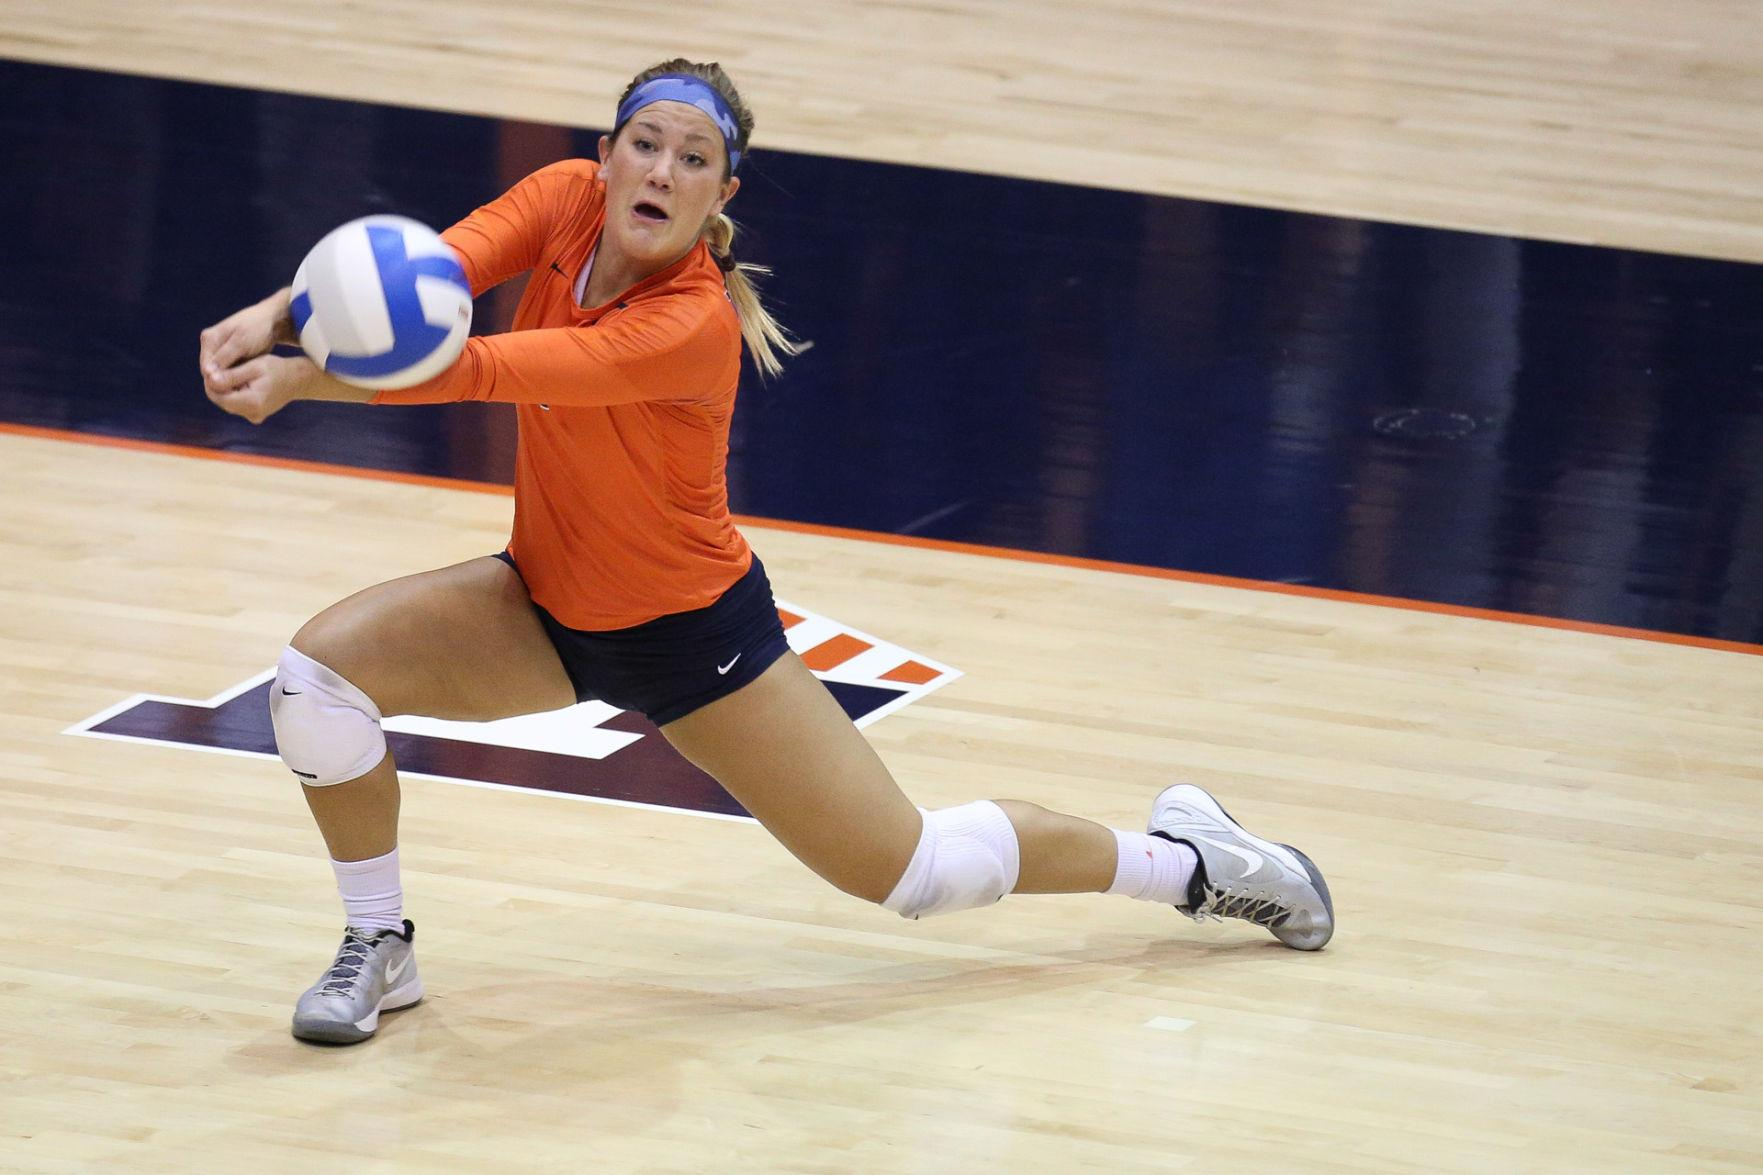 Illinois' Brandi Donnelly digs the ball during the game against Purdue at George Huff Hall on Oct. 25.